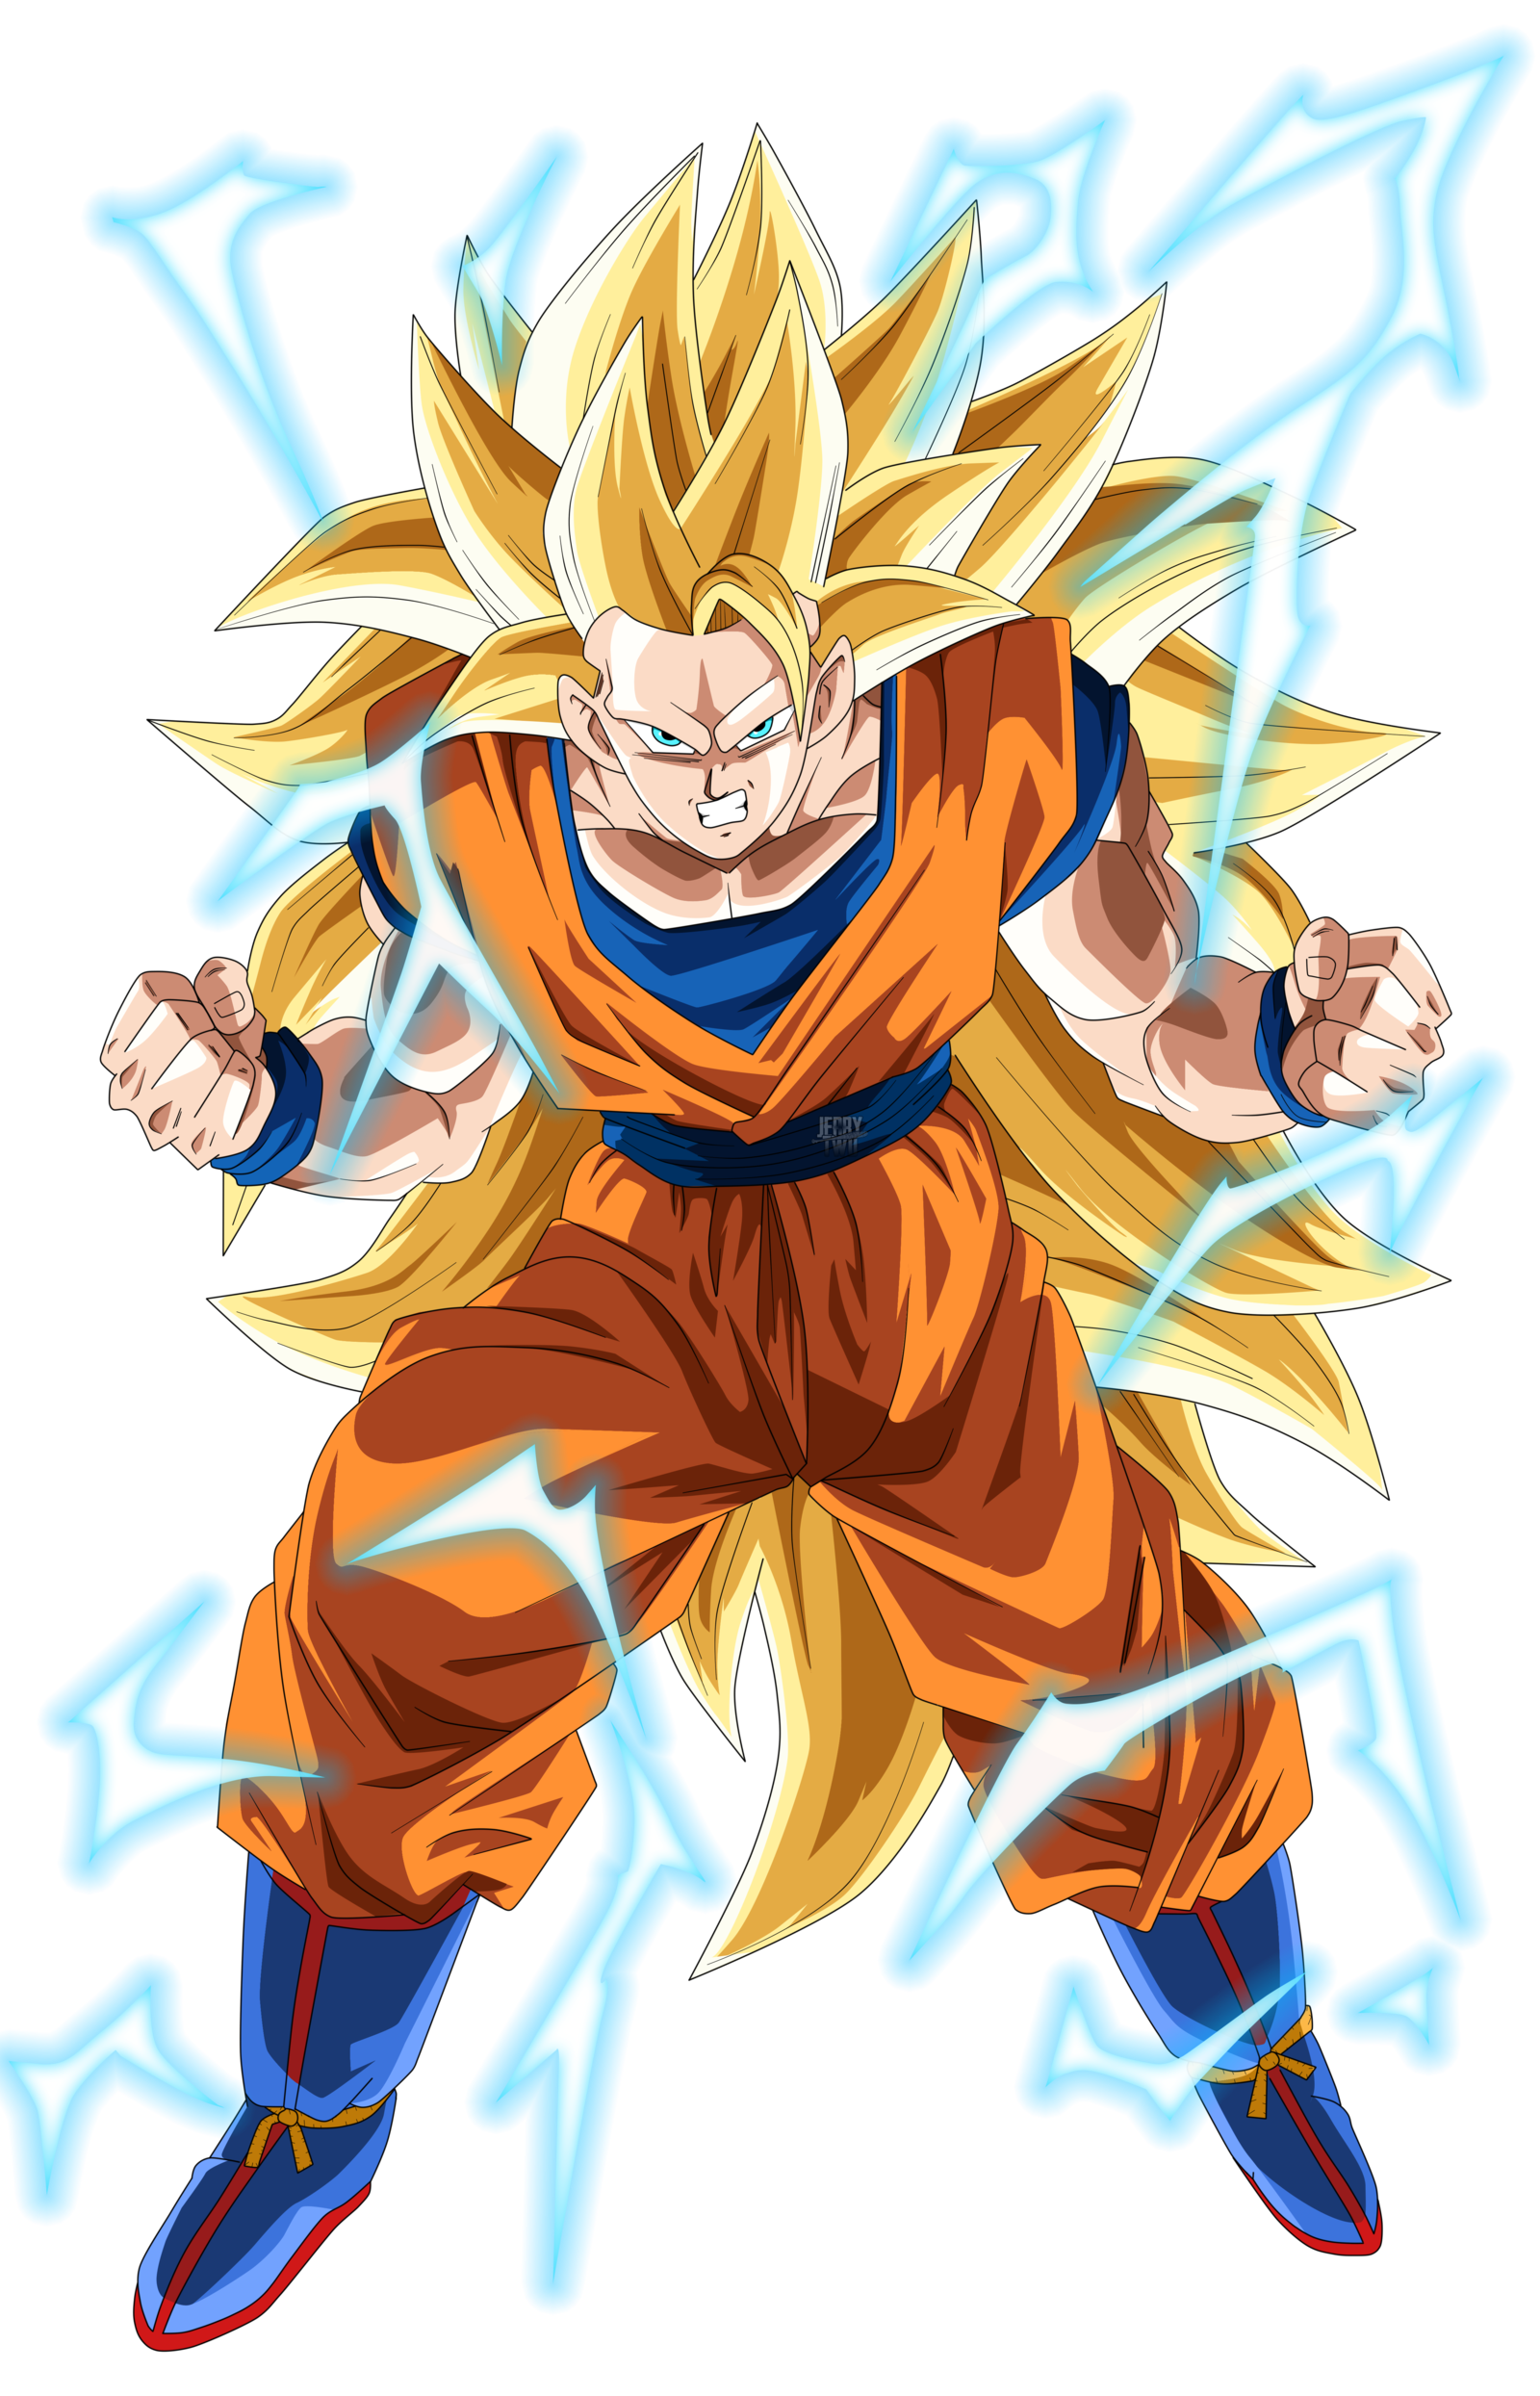 Dragon ball png. Son goku super saiyajin